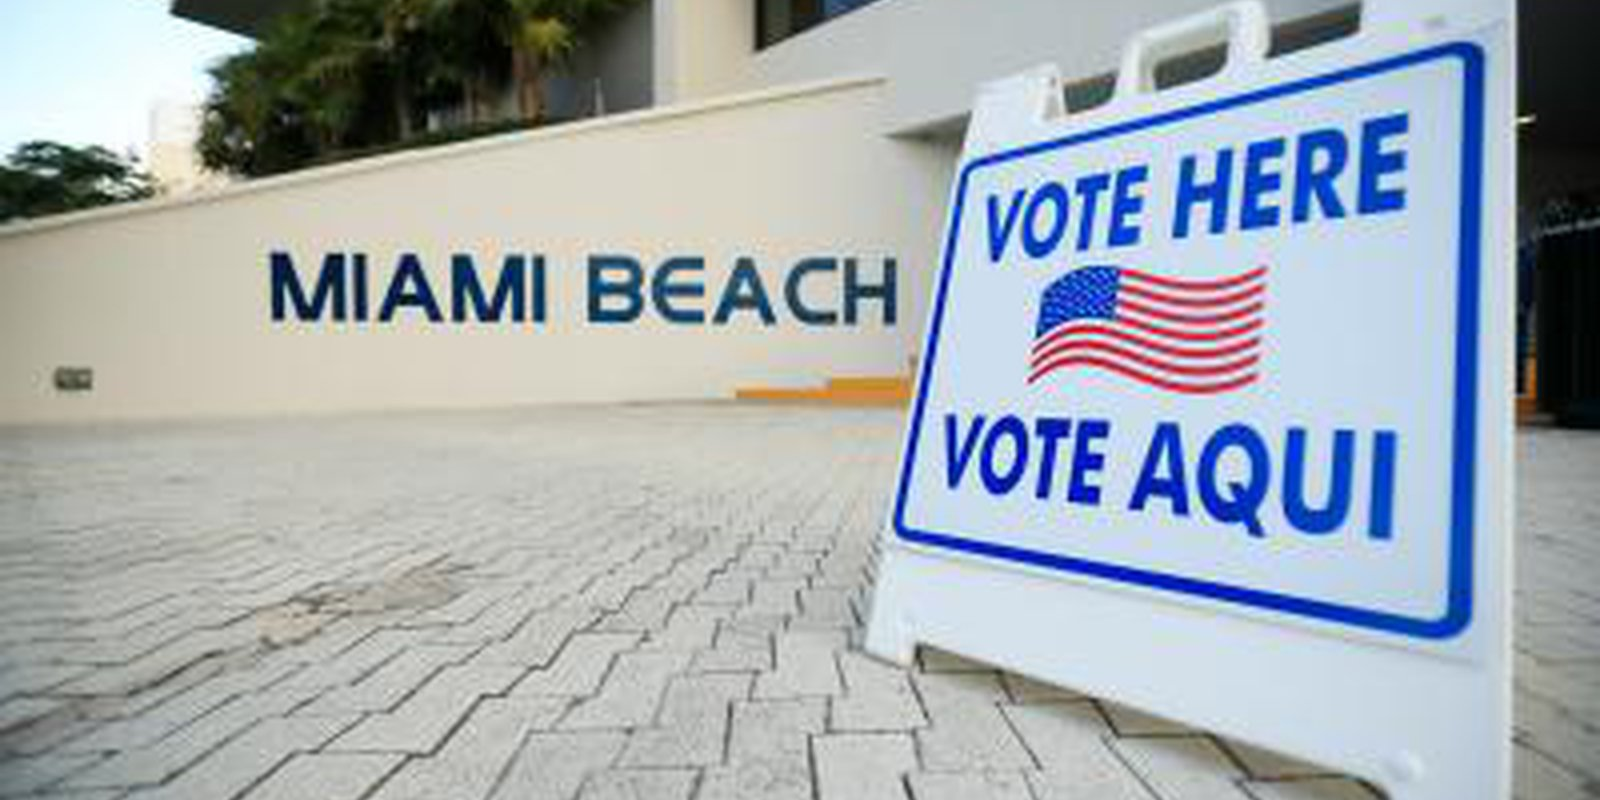 A sign directs voters to a polling location during the Florida presidential primary on 17 March 2020 in Miami Beach. Photo: Getty Images.